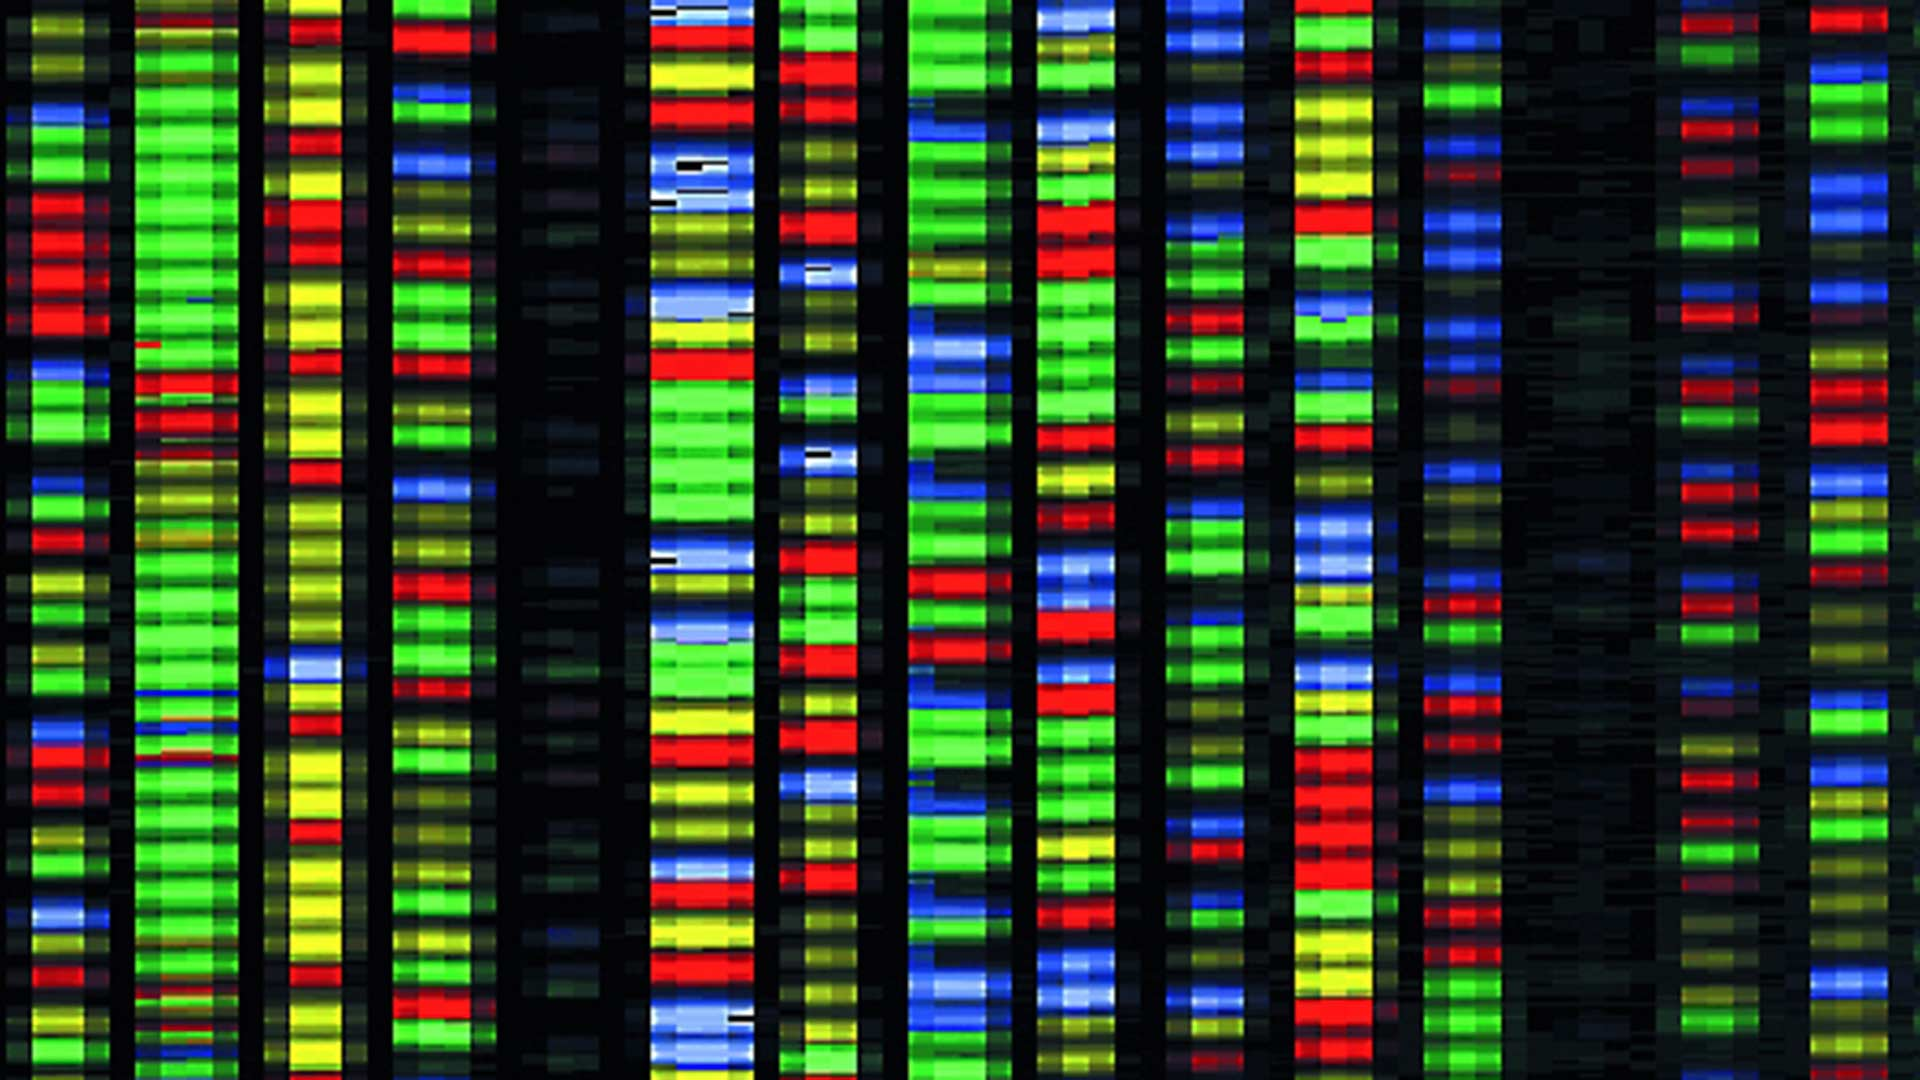 Portion of an image produced by software that performs DNA sequencing.